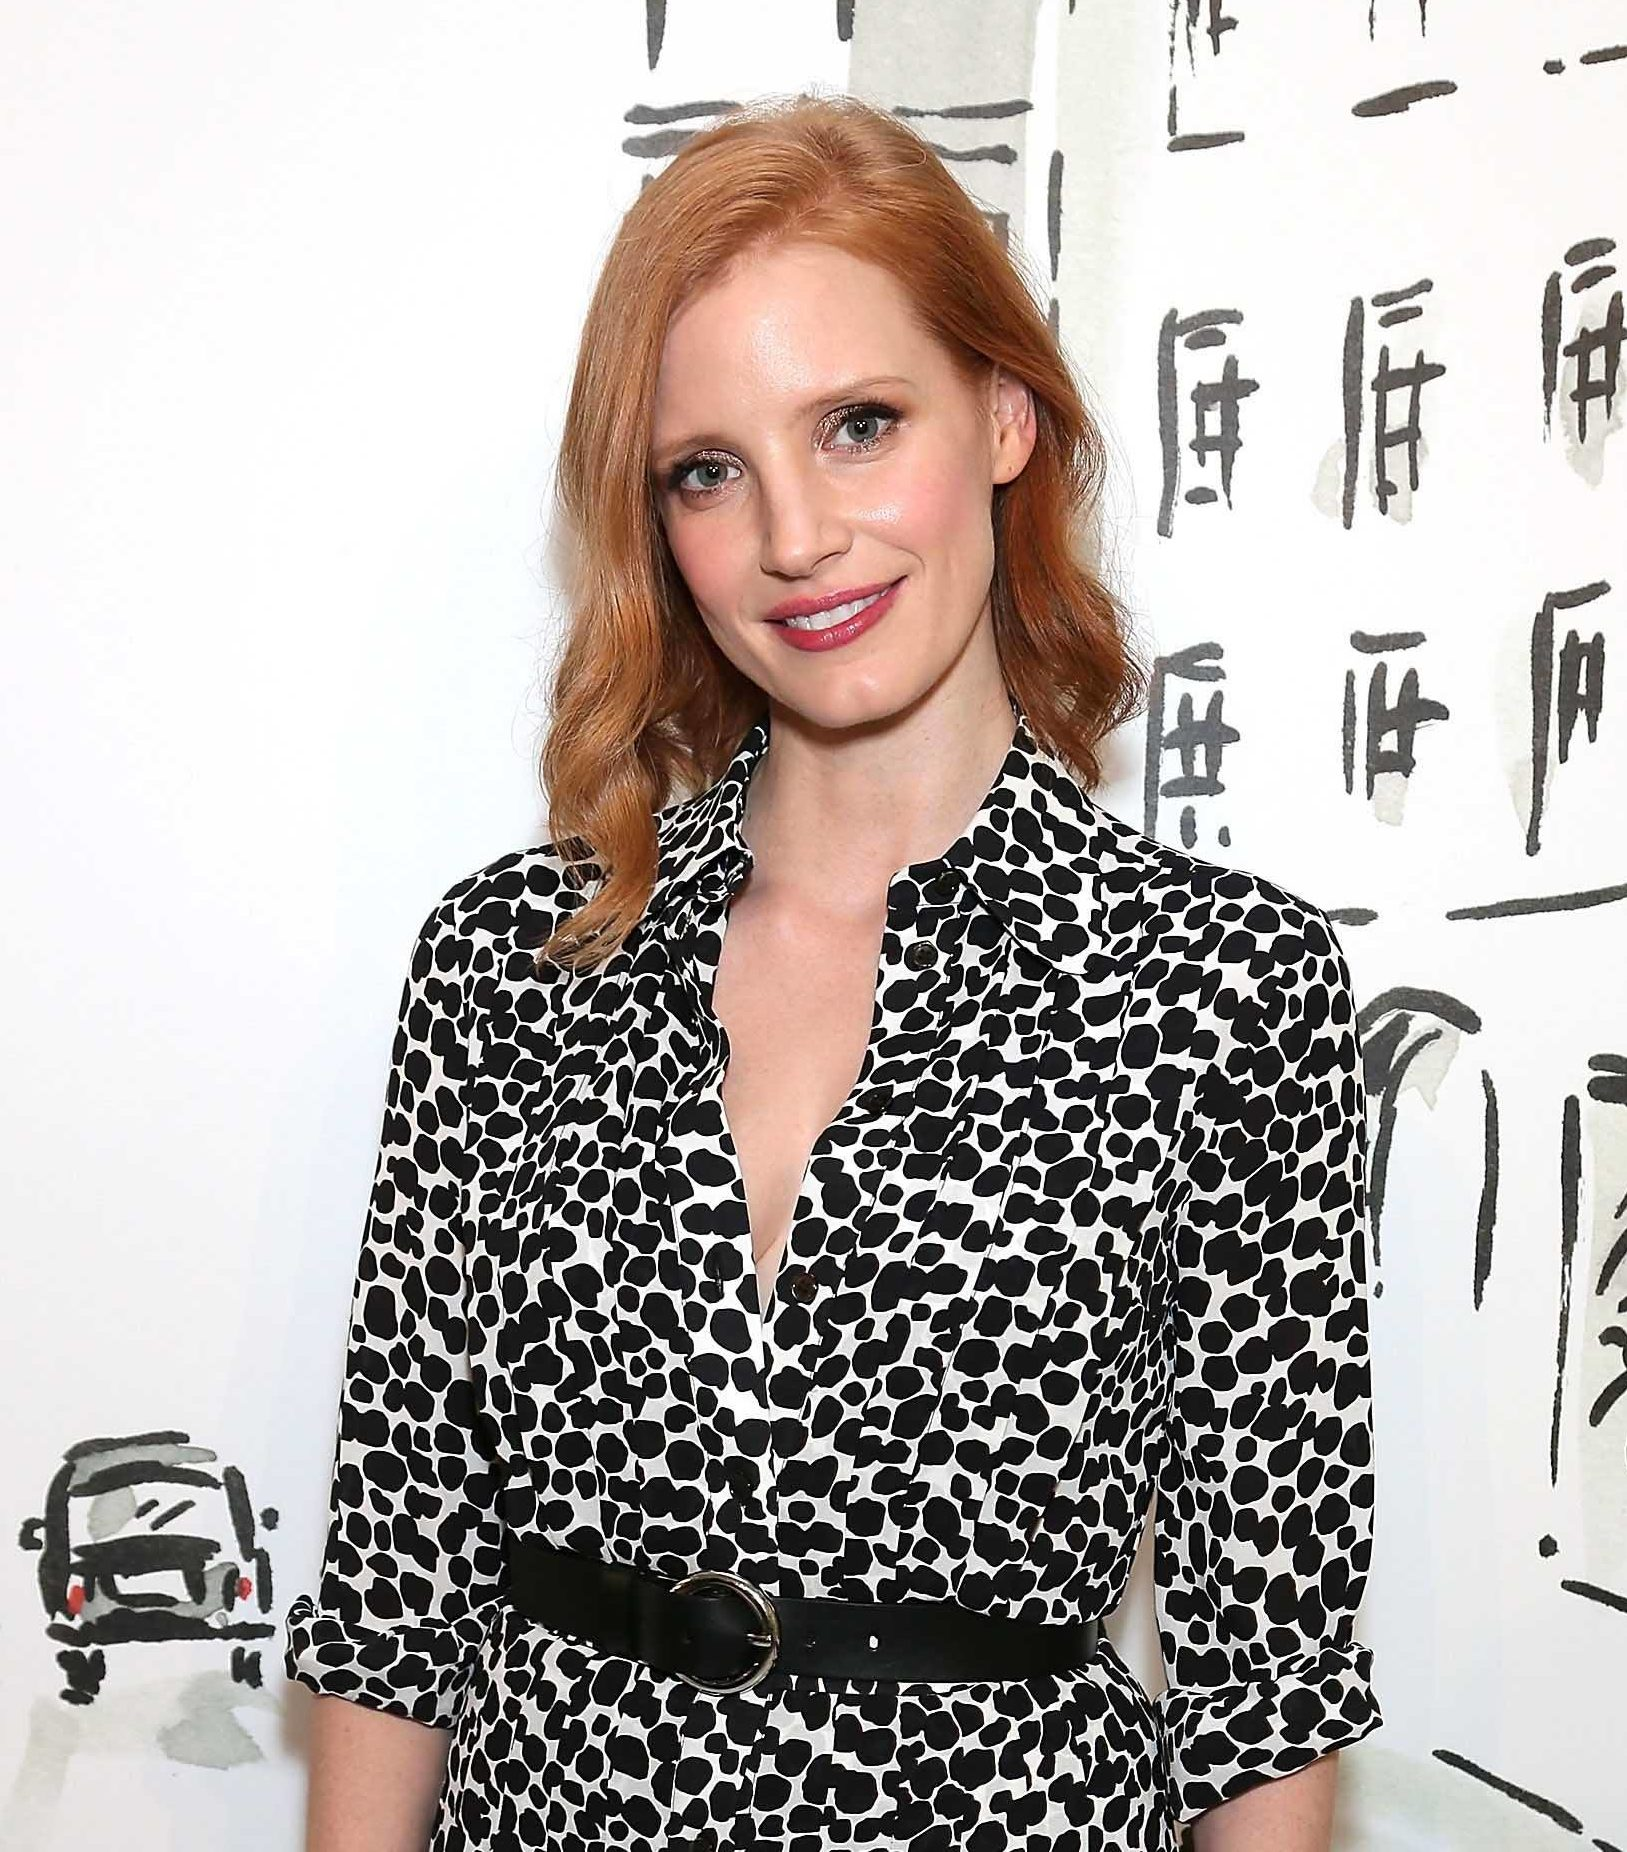 Trendy bob hairstyles: All Things Hair - IMAGE - long bob red ginger Jessica Chastain